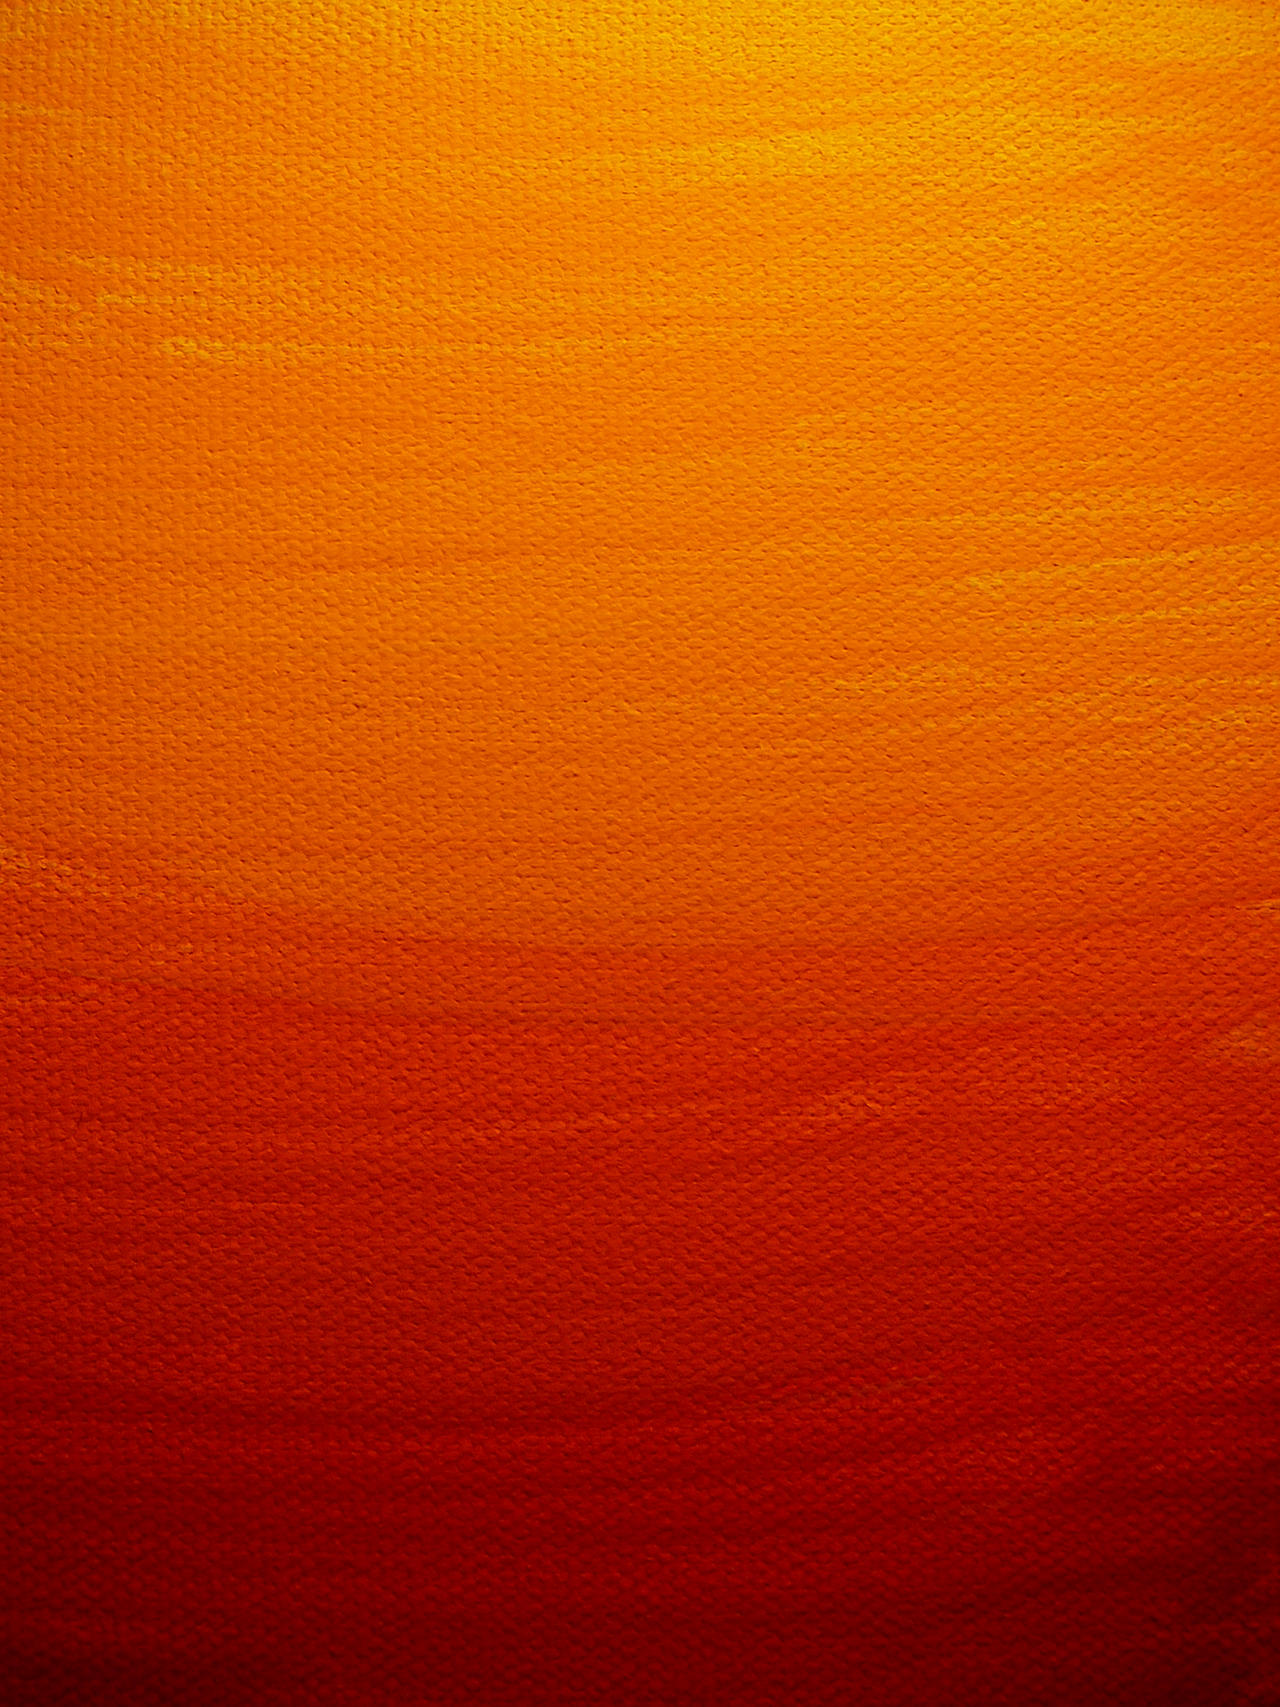 Tone And Texture In Art : Sunset paint canvas texture by enchantedgal stock on